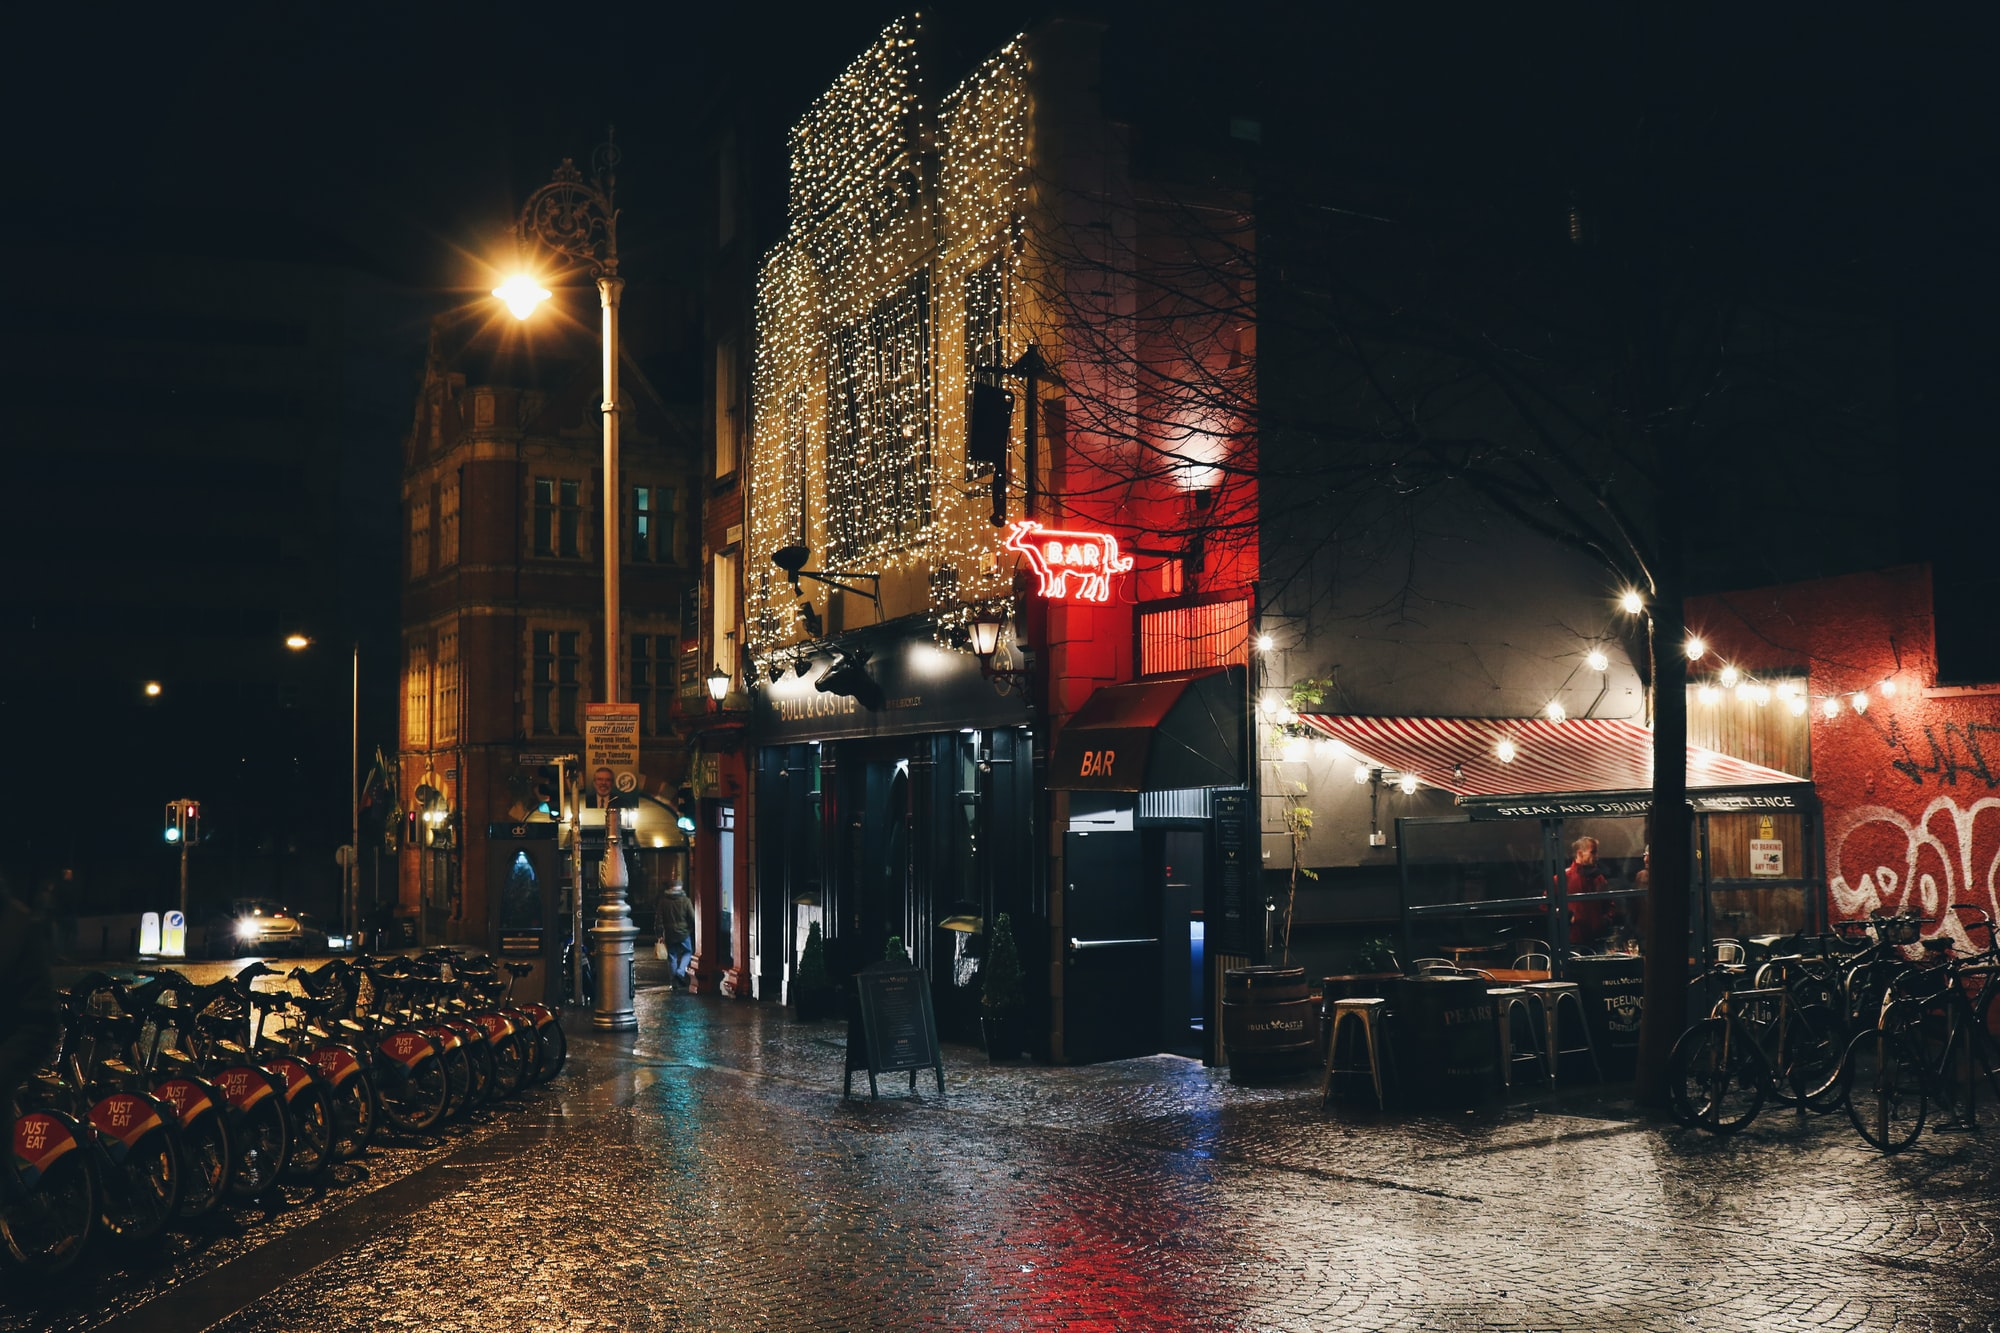 Dublin's night light reflection